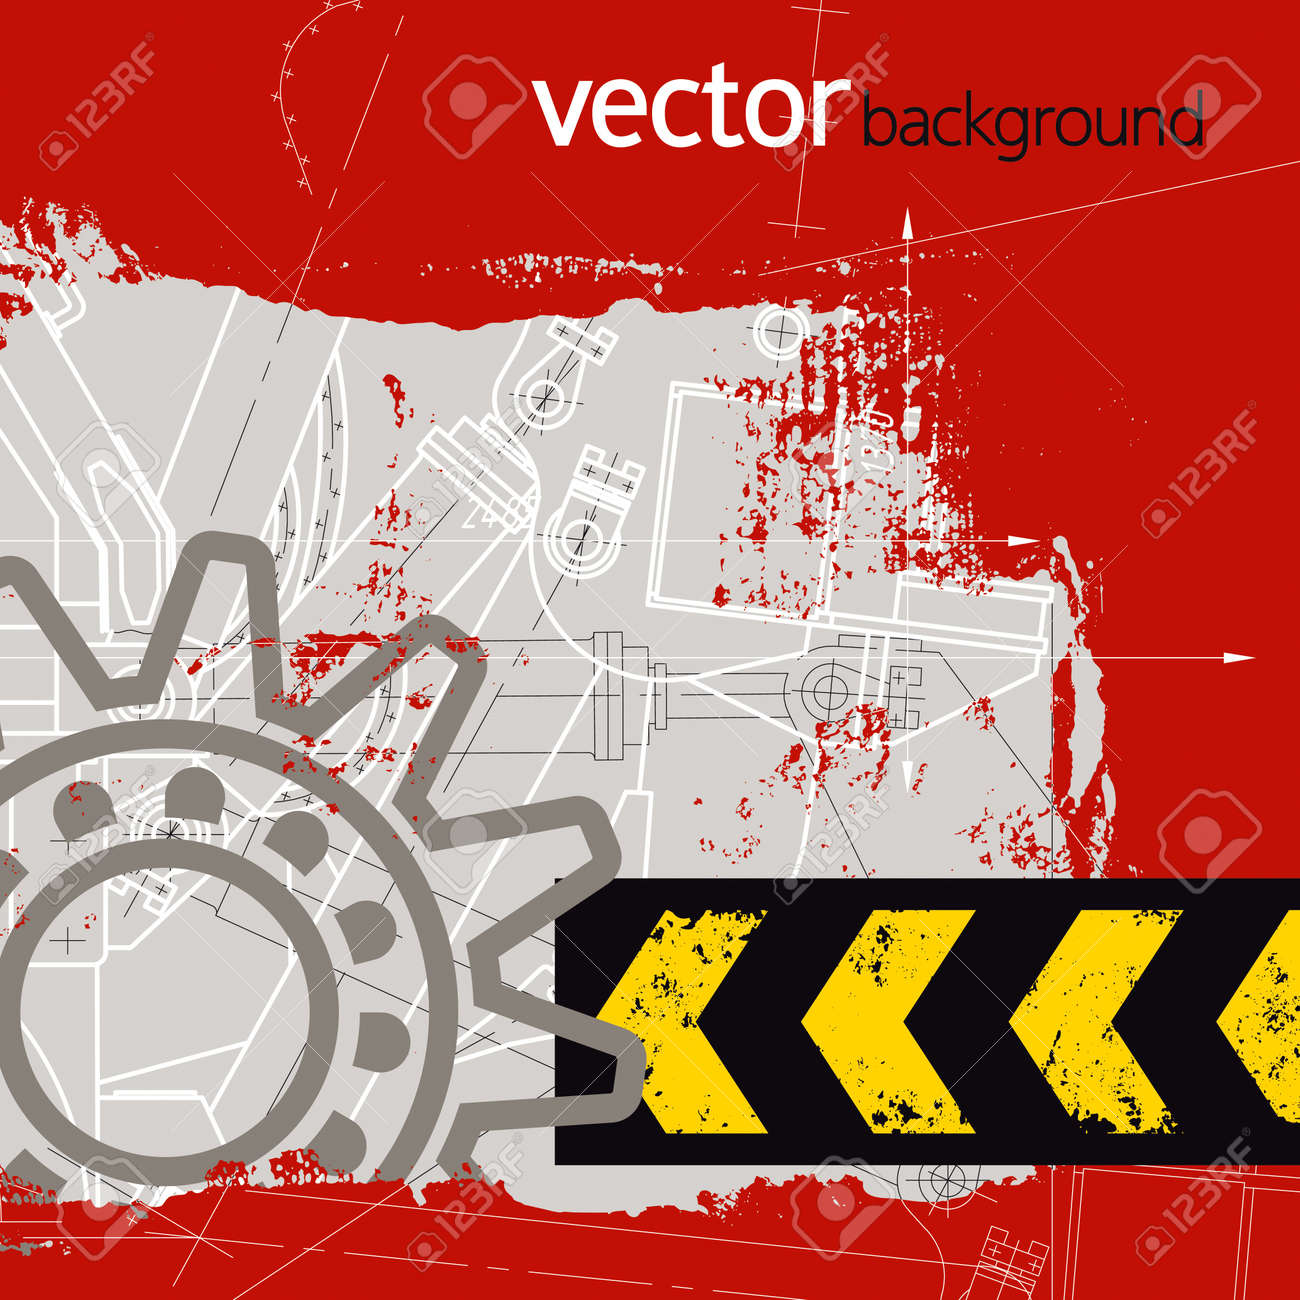 Grunge technology background, vector illustration Stock Vector - 16282208